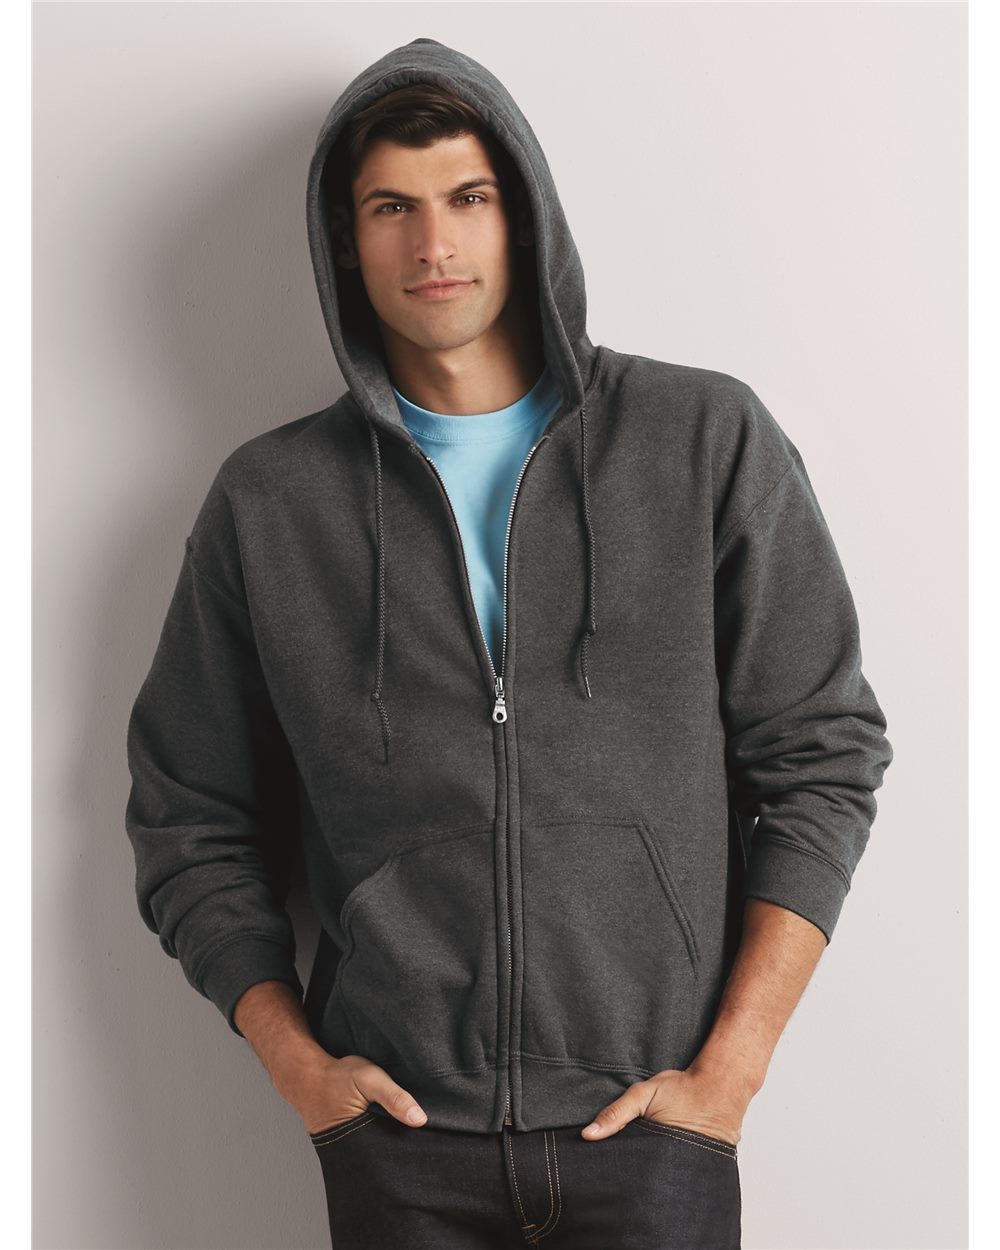 f77c26ffc Gildan 18600 - Heavy Blend Full-Zip Hooded Sweatshirt - Friendly ...